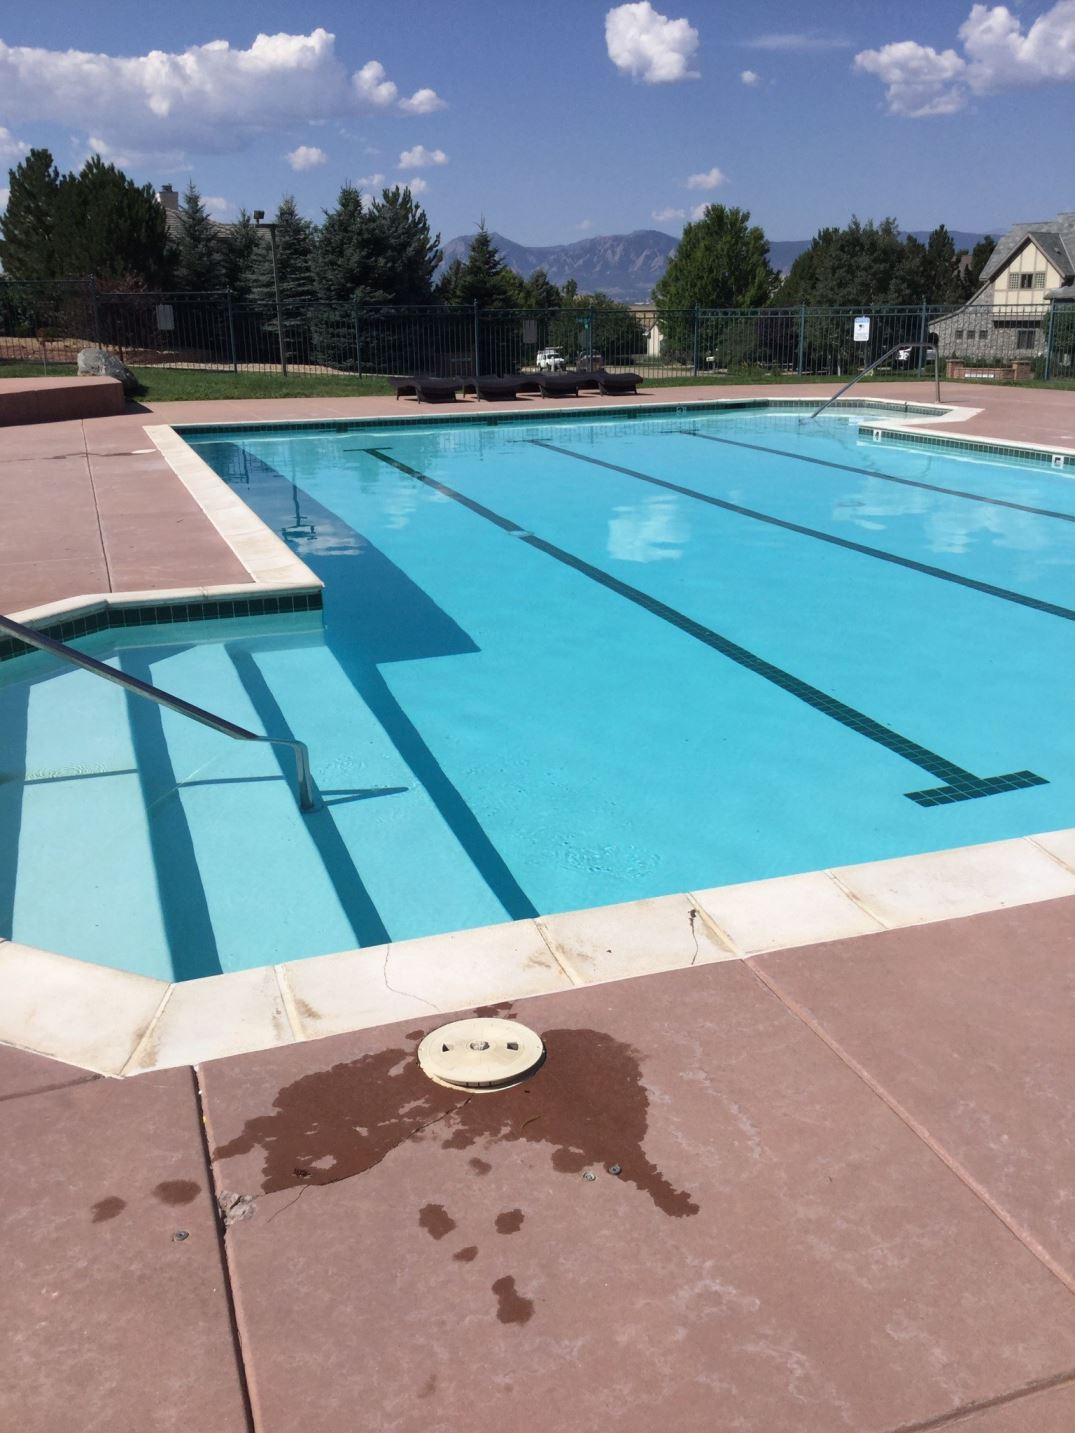 Swimming Pool Maintenance Store In Boulder Co Swimming Pool And Spa Maintenance Near Me